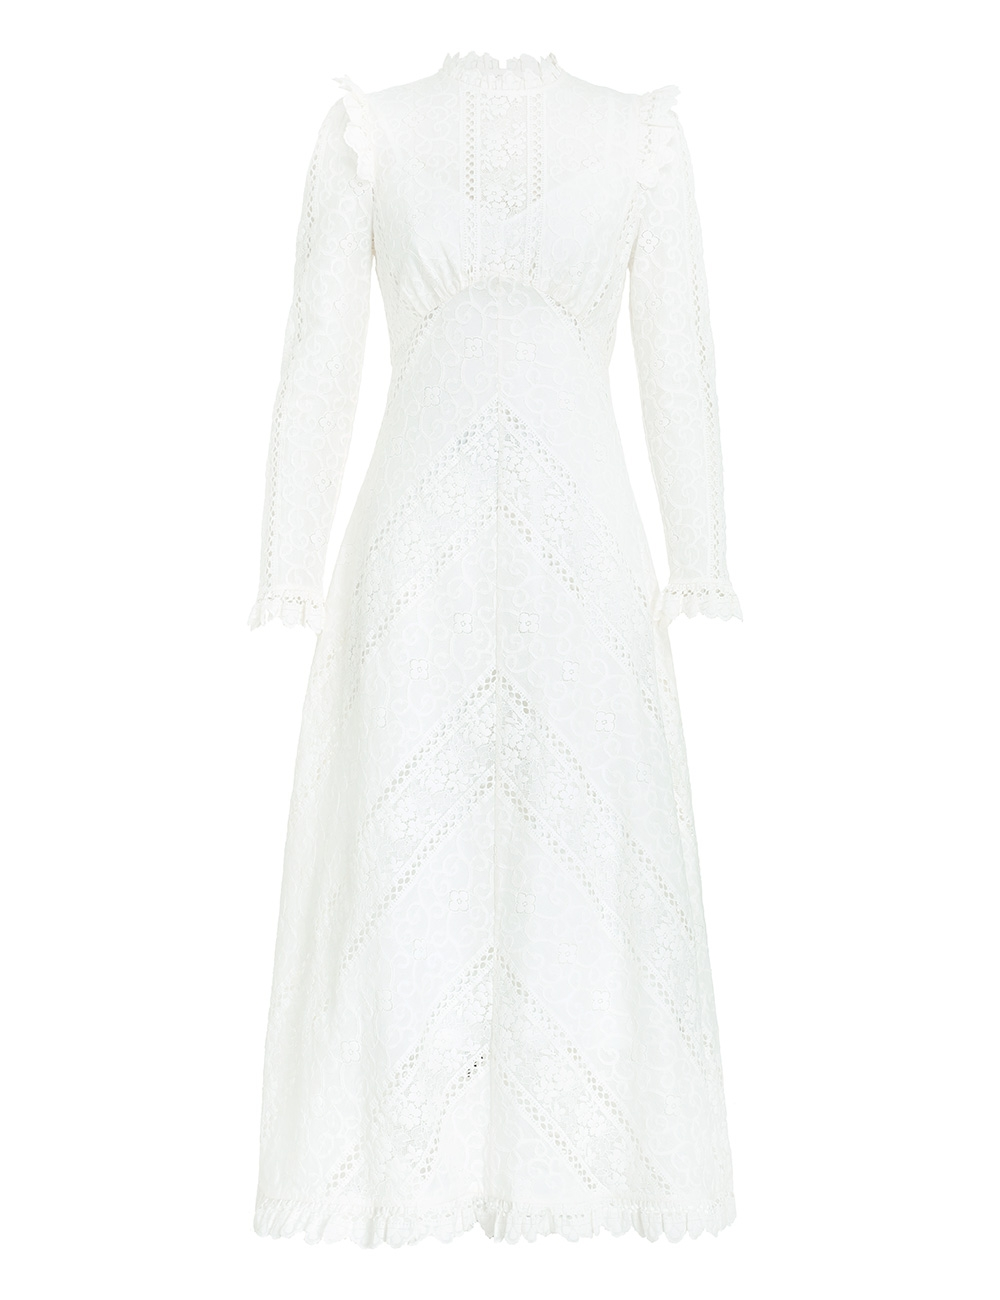 Brighton Panelled Lace Dress